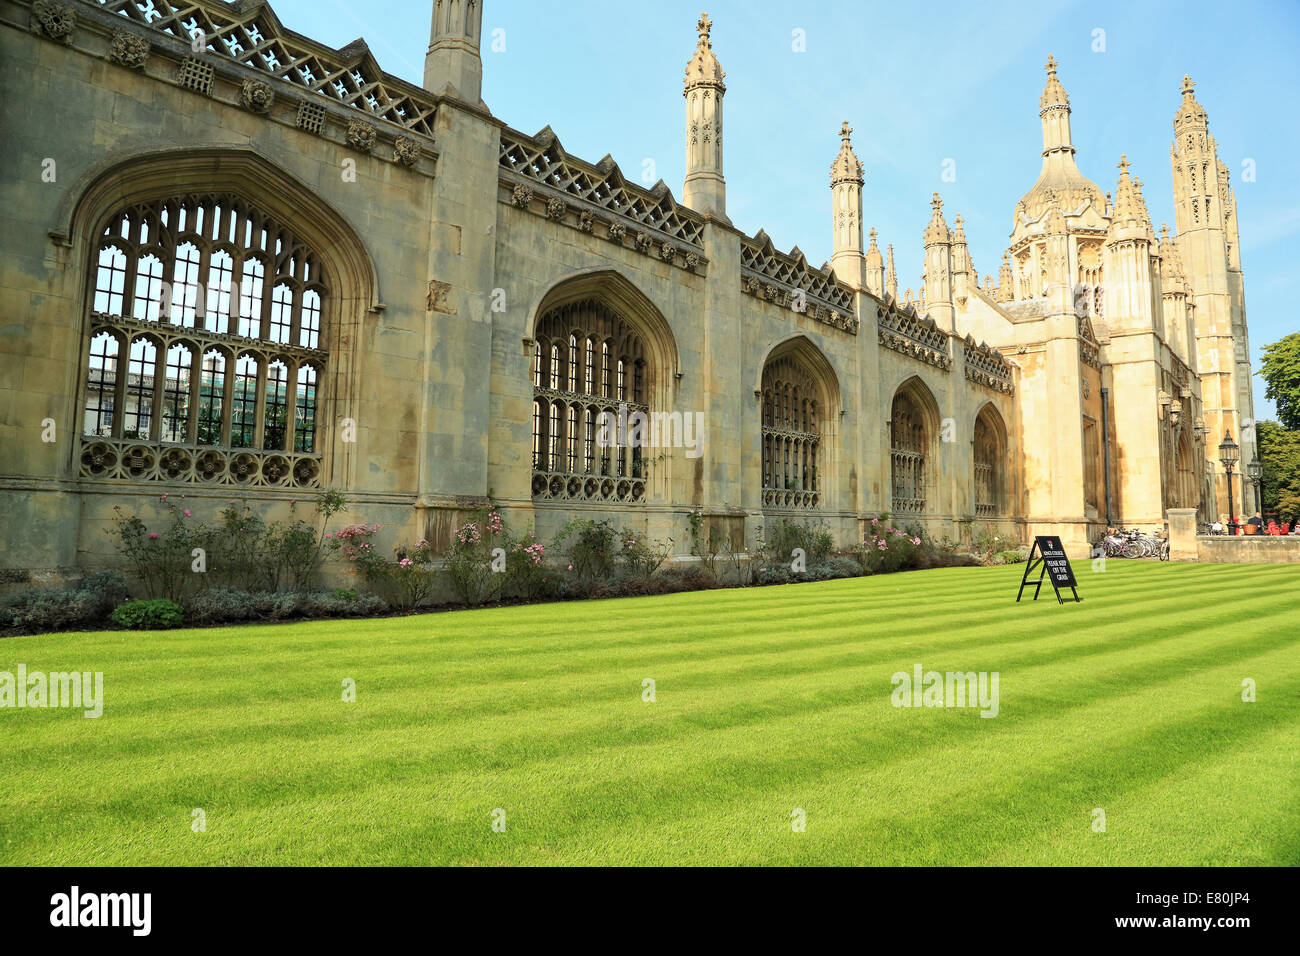 King's College, Cambridge, UK - Stock Image